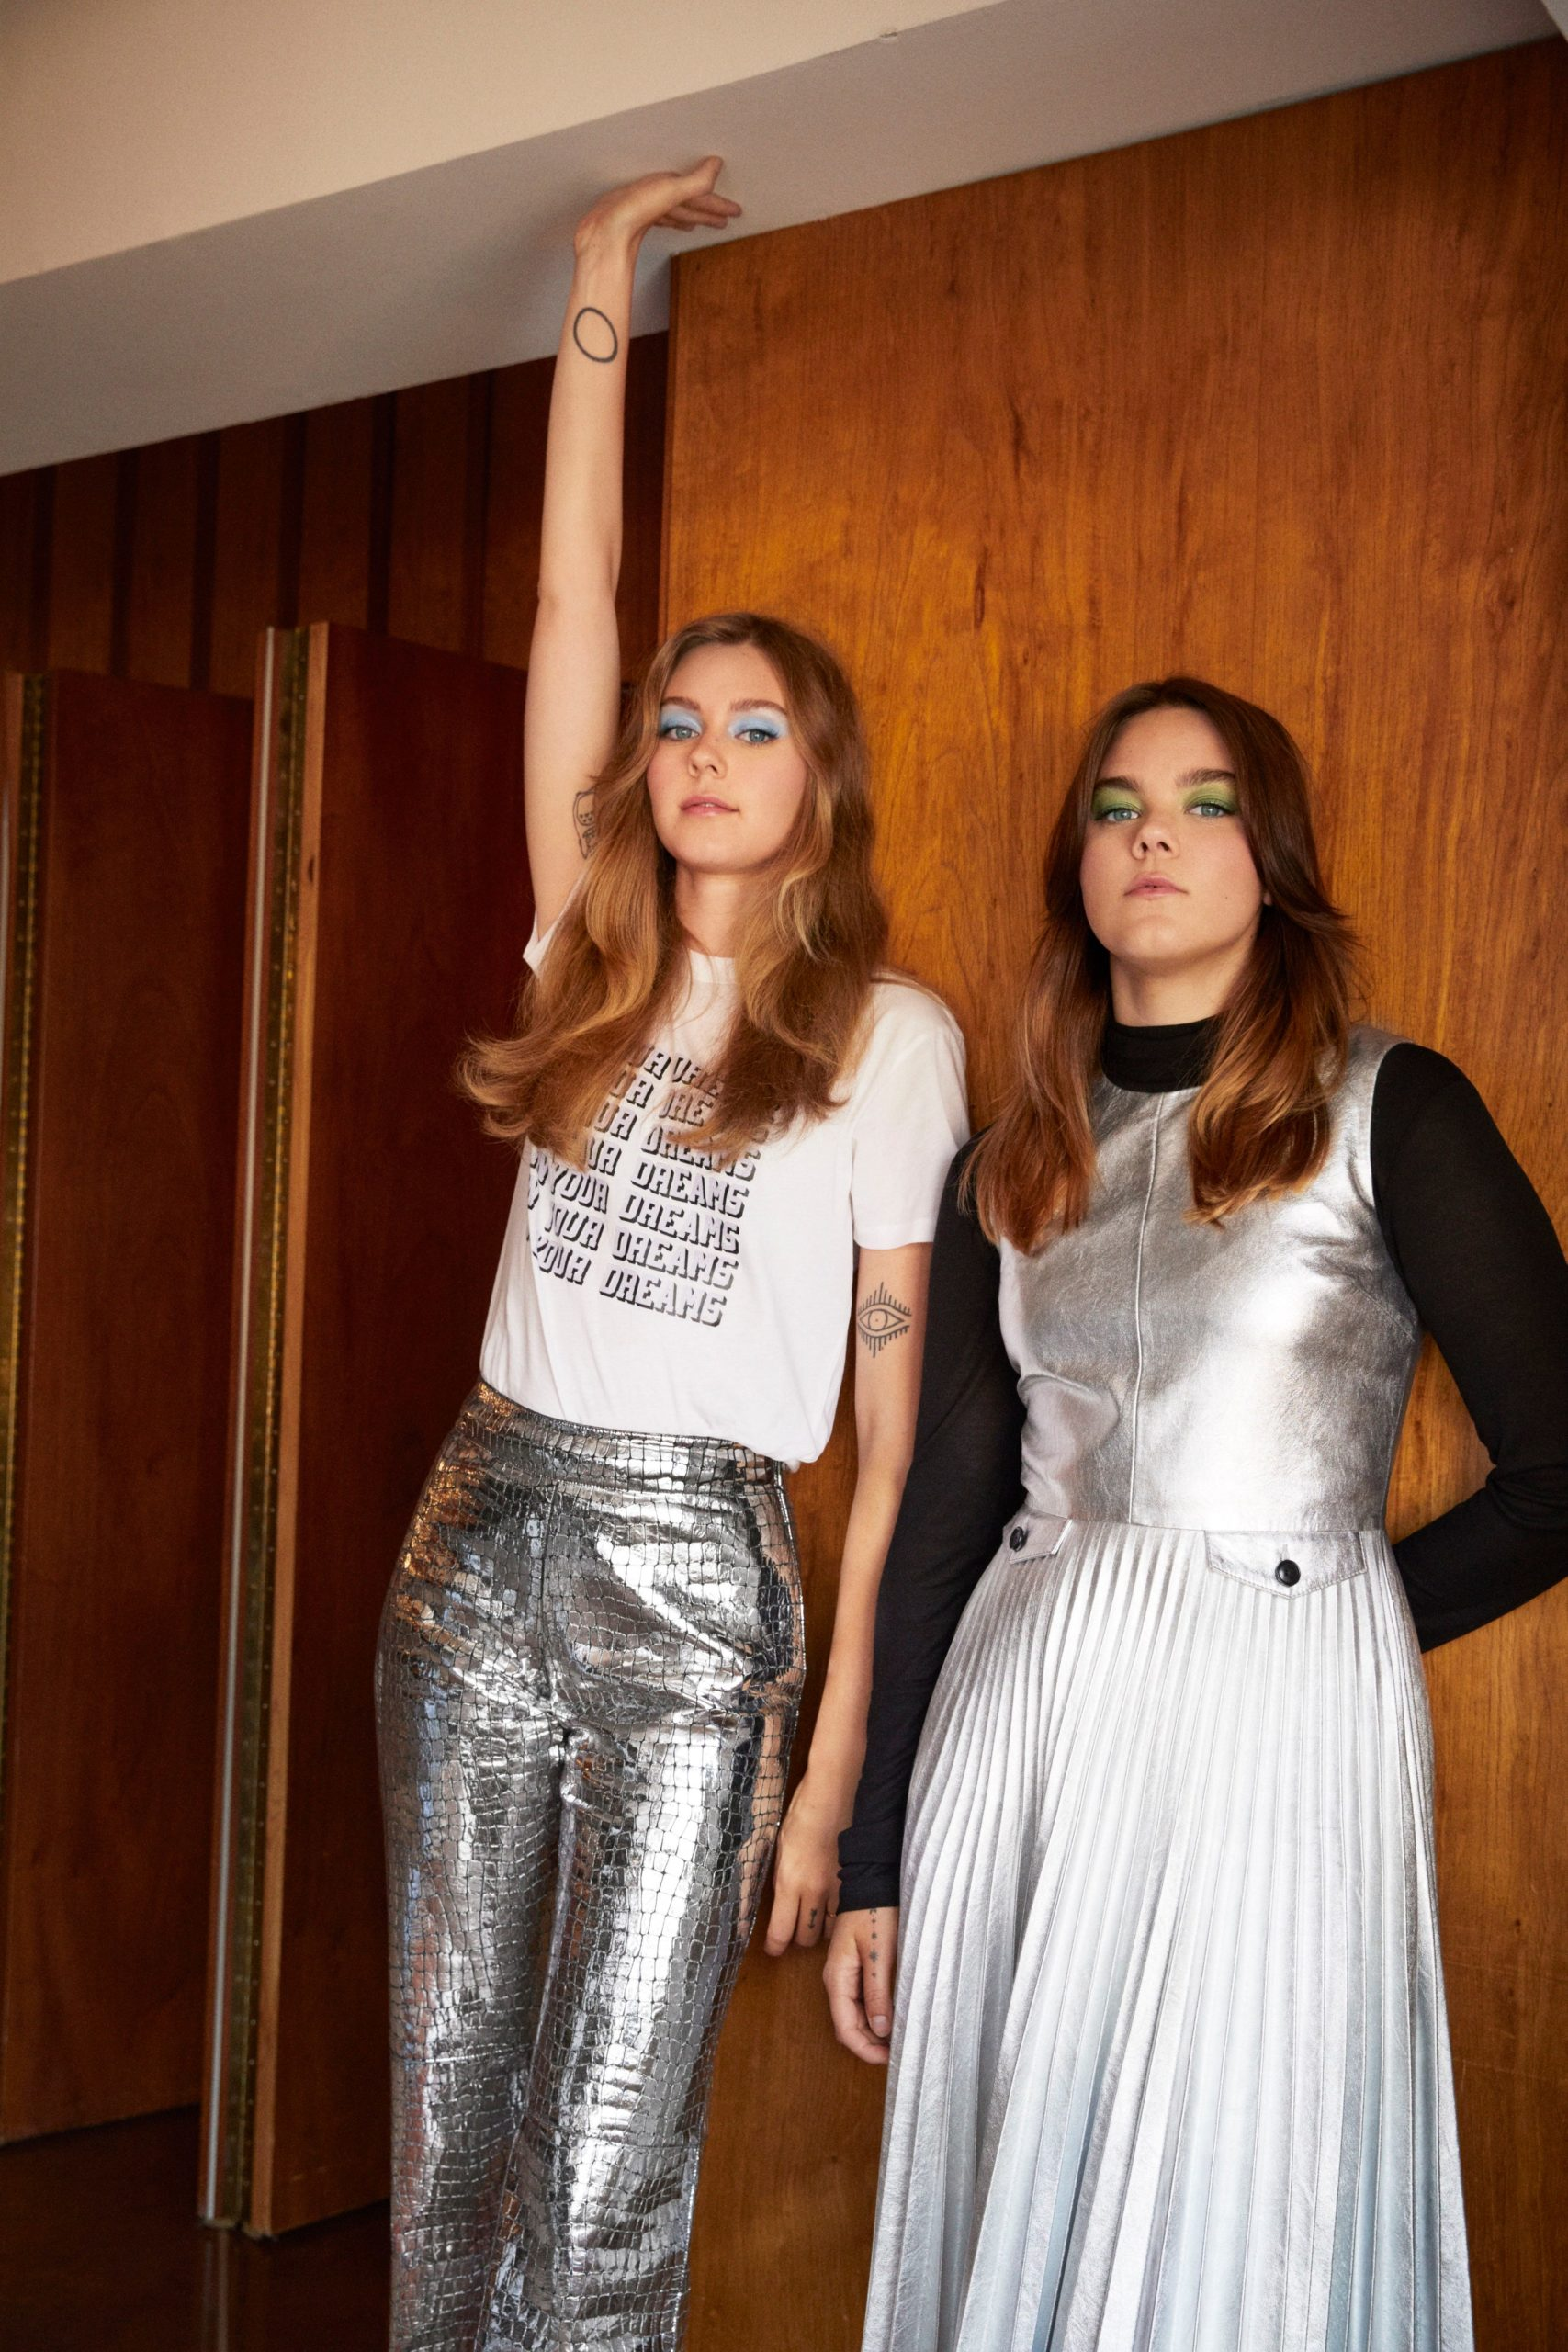 The Stockholm-Based Sisters Behind First Aid Kit Go West